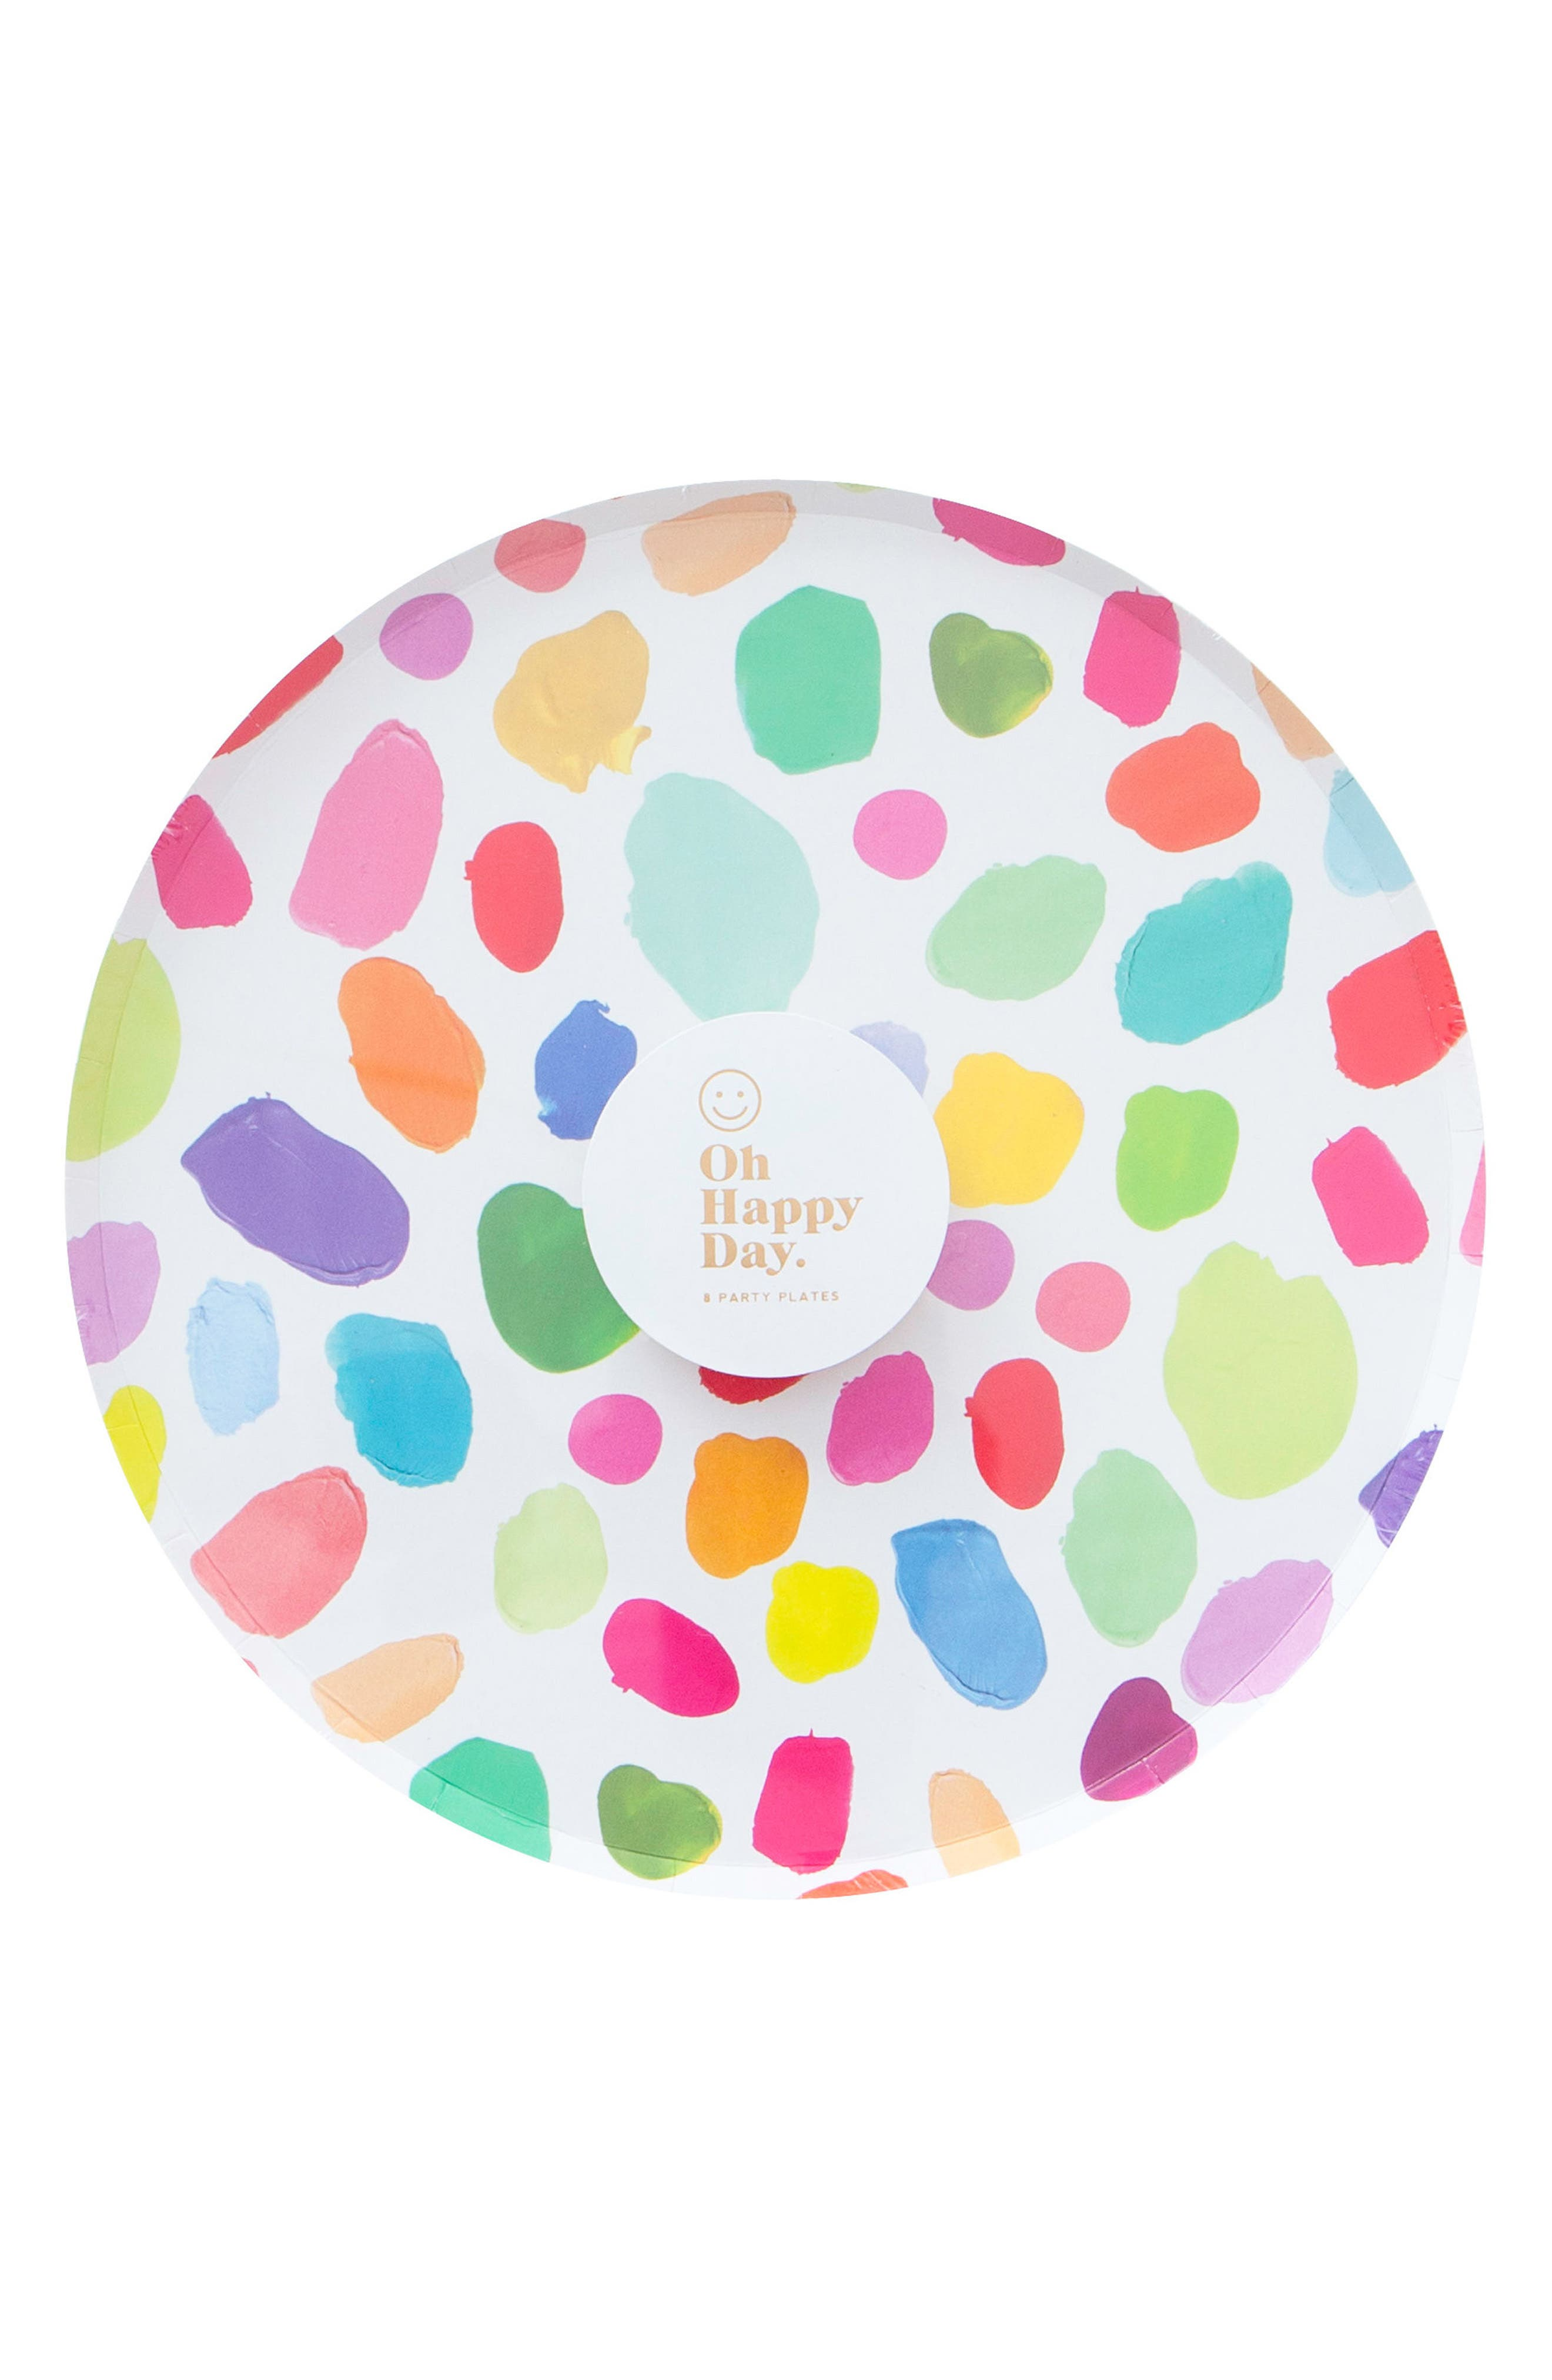 Oh Happy Day Set of 8 Kindah 9-Inch Paper Party Plates